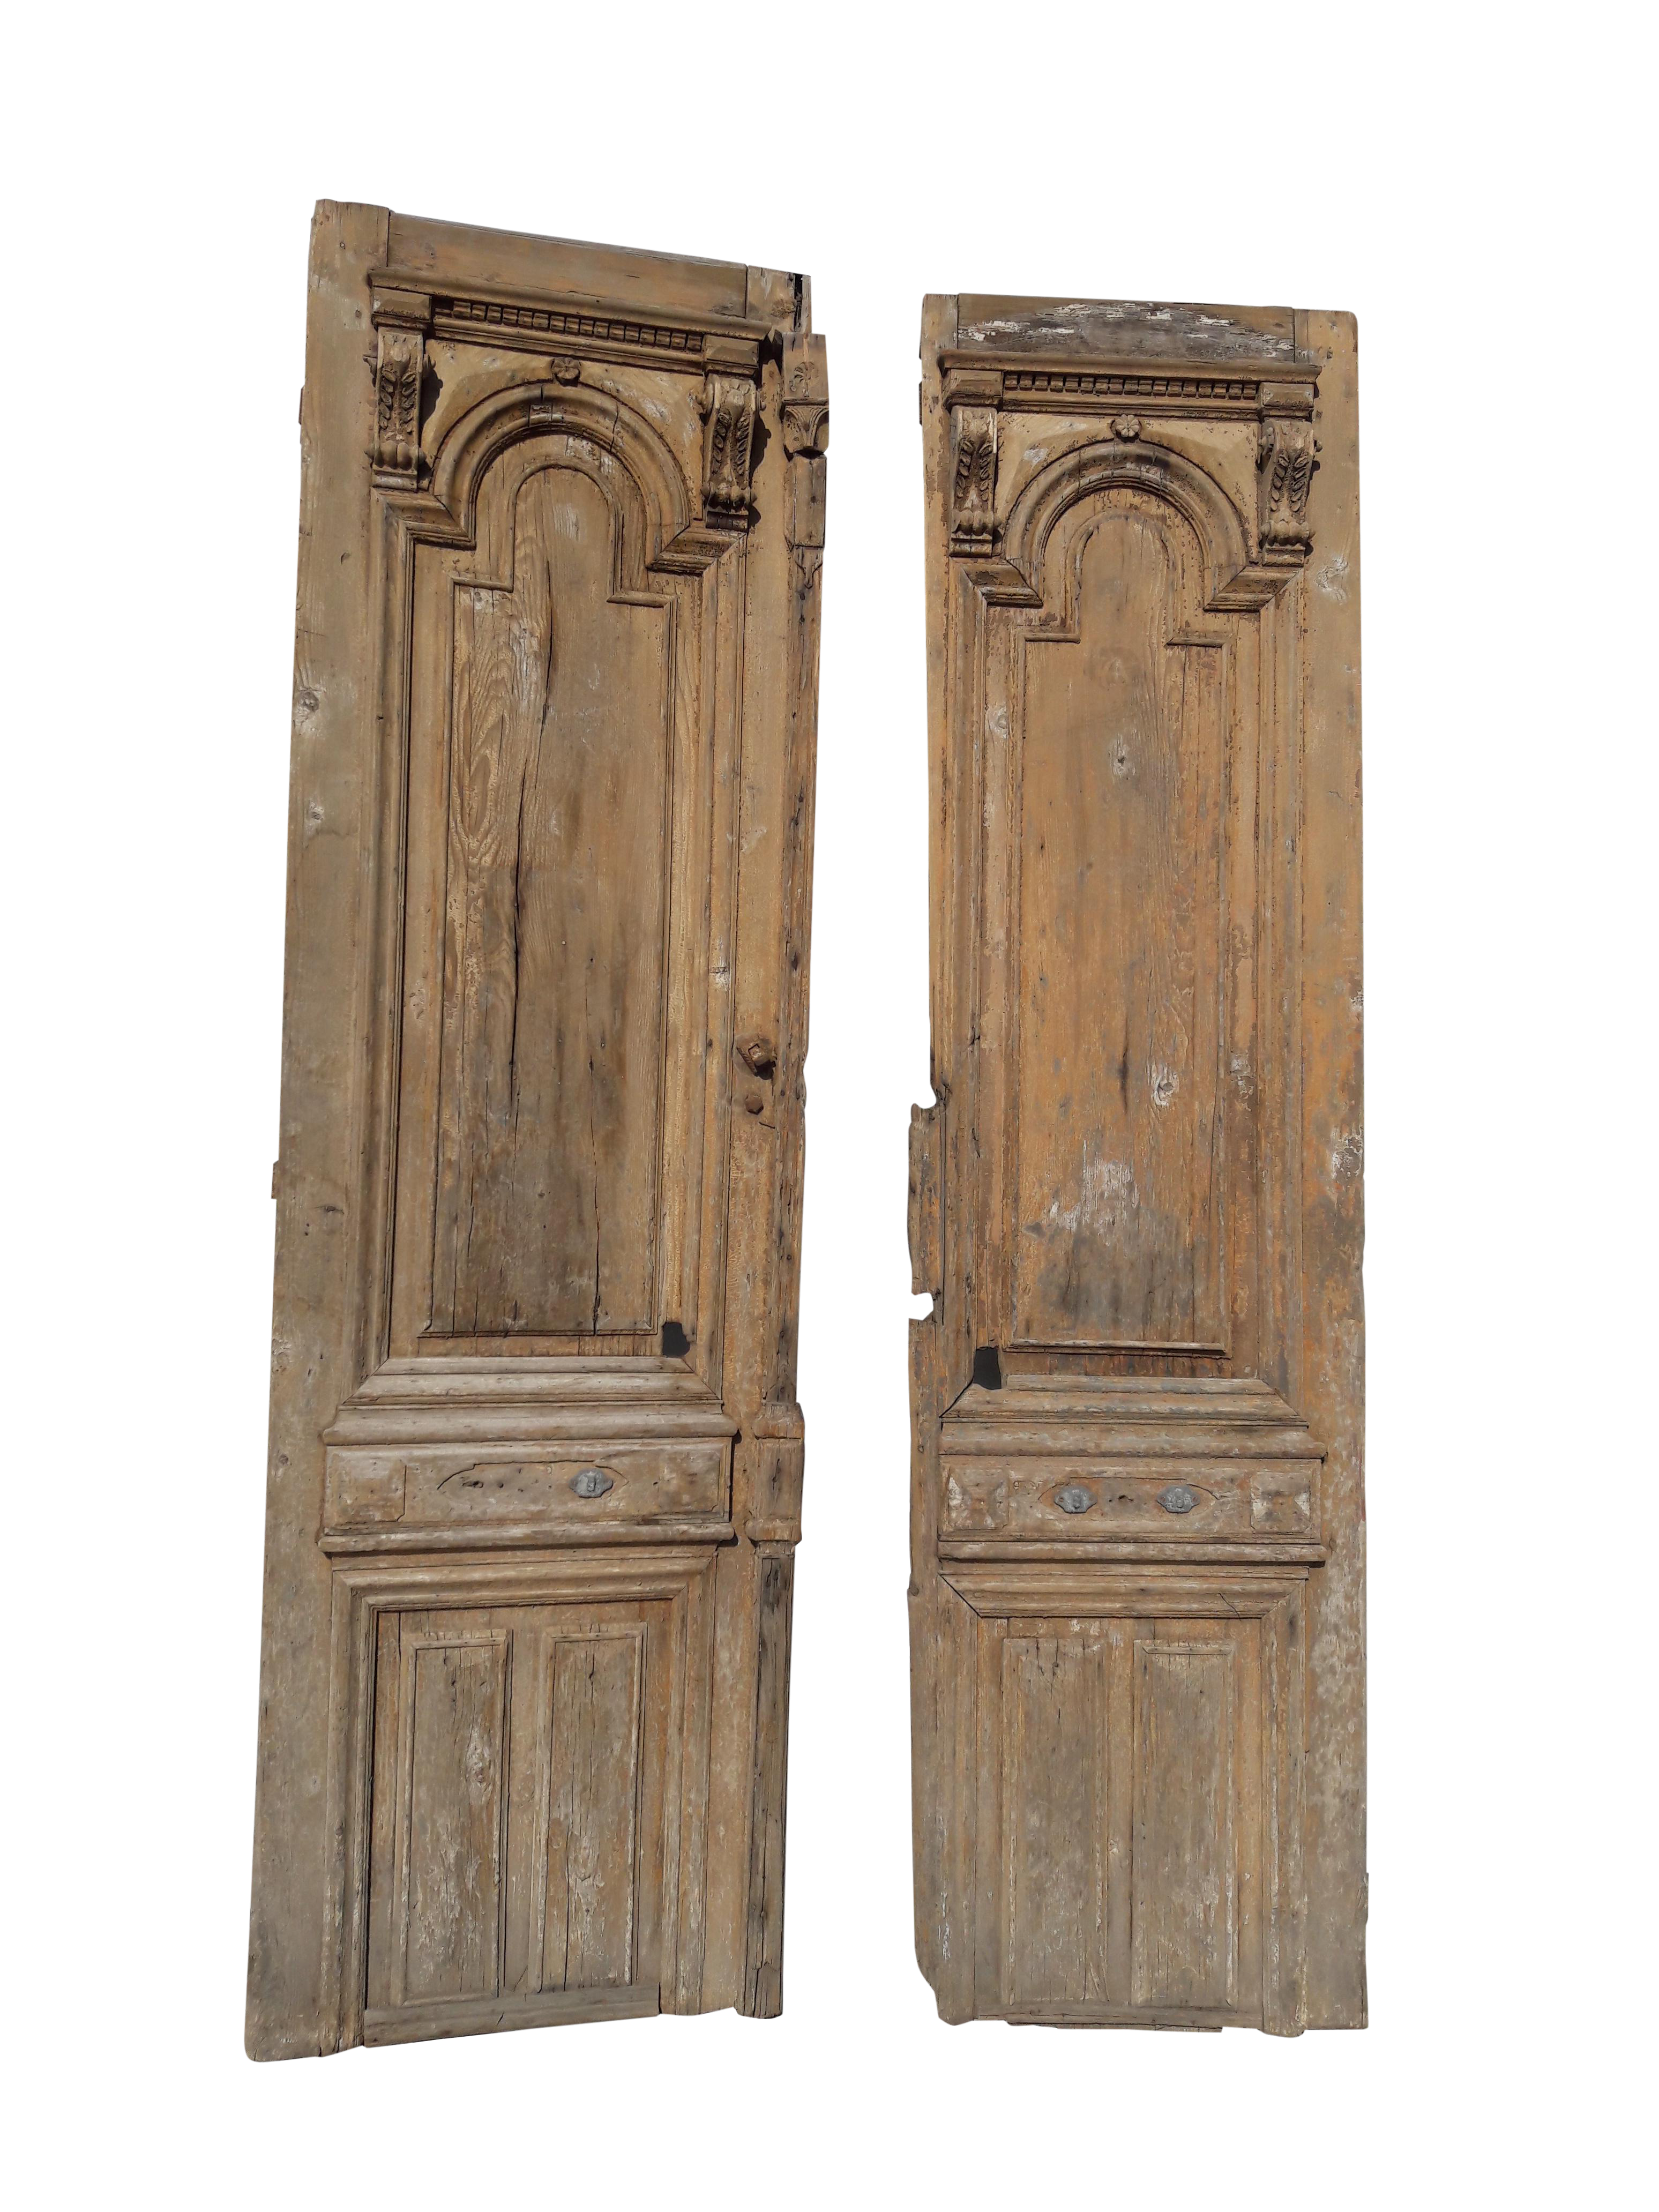 Antique European Architectural French Exterior Carved Mediterranean Country Farmhouse Doors - a Pair  sc 1 st  Chairish & Antique European Architectural French Exterior Carved Mediterranean ...